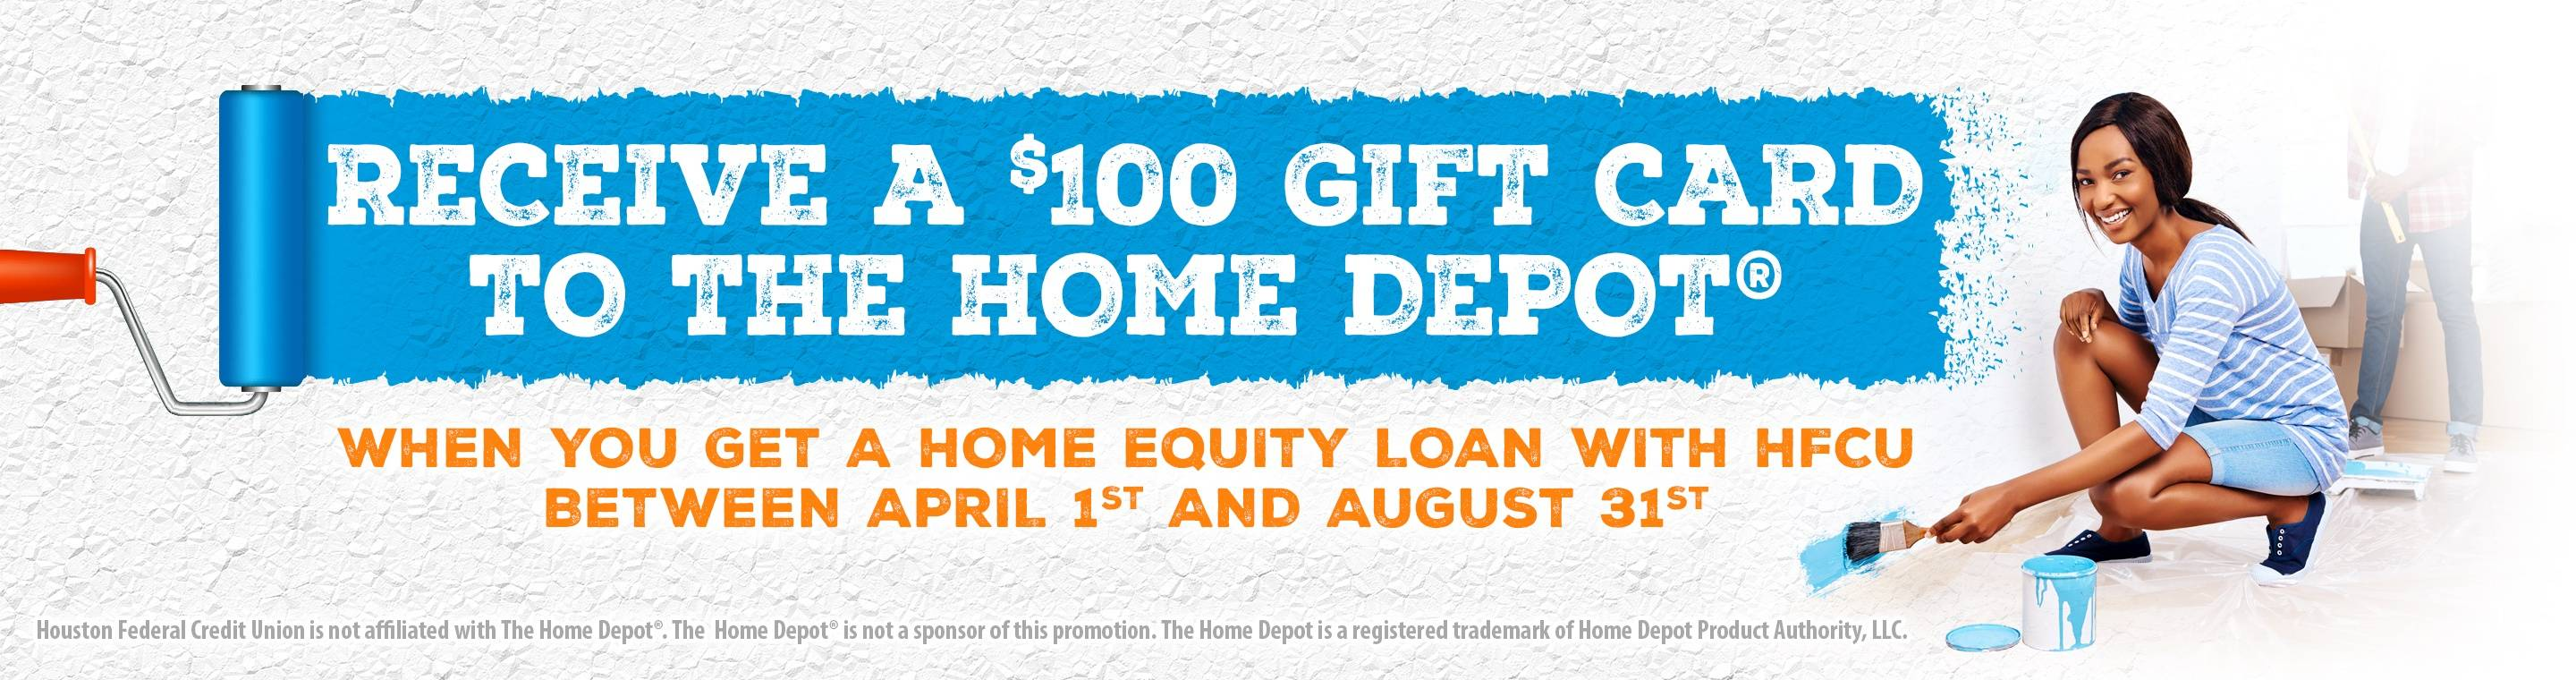 Home houston federal credit union recieve a 100 gift card to the home depot colourmoves